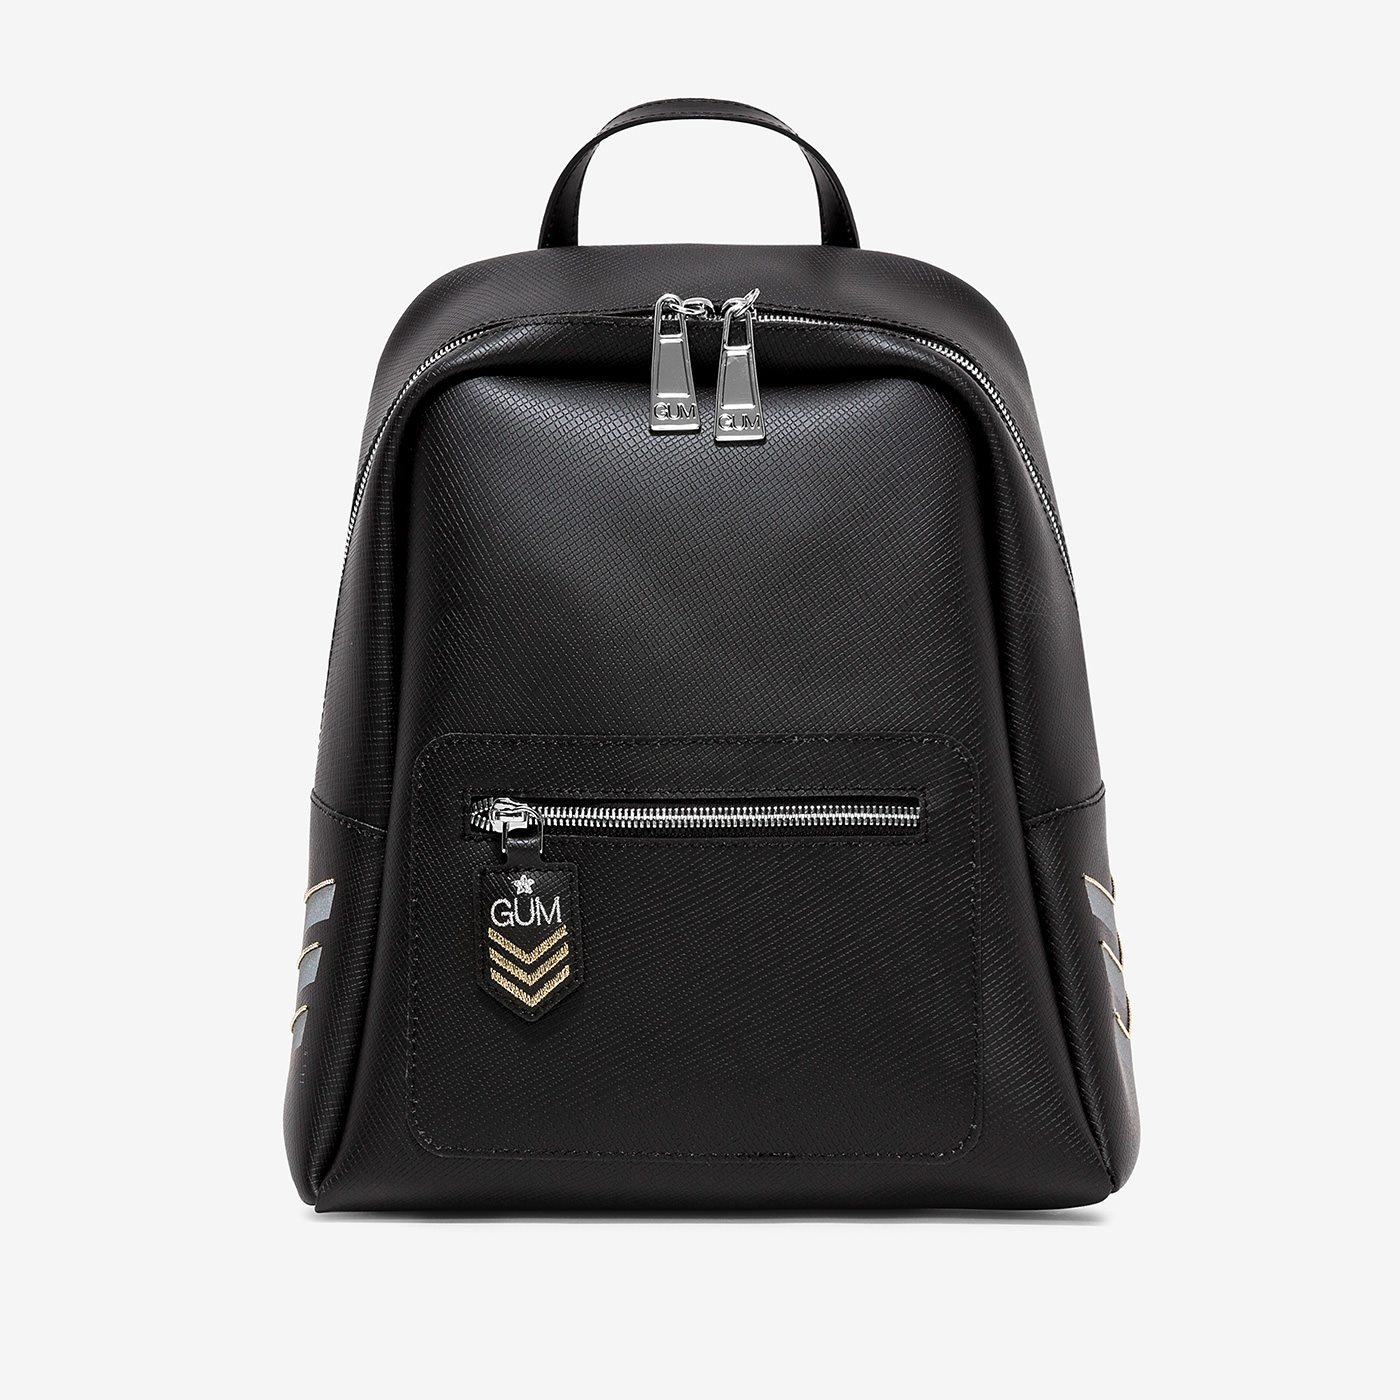 GUM: MILITARY NINE BACKPACK